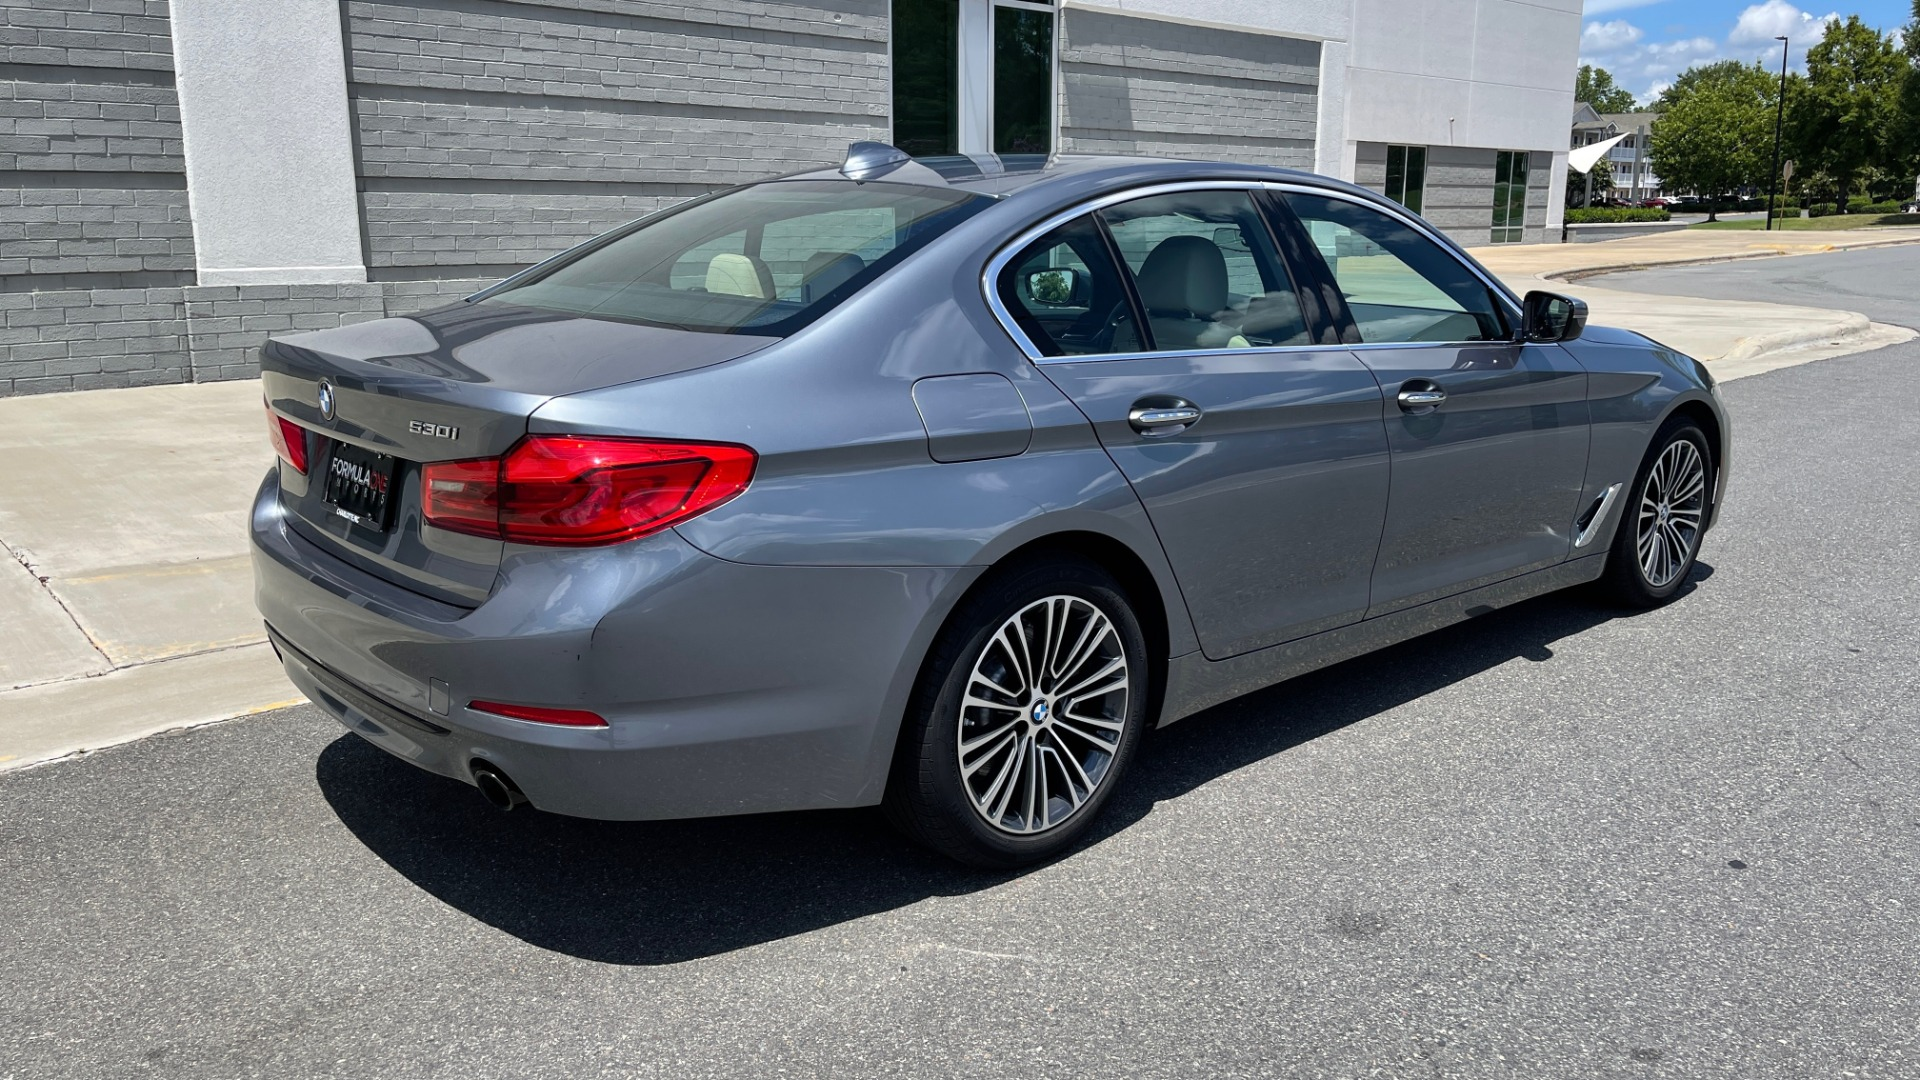 Used 2017 BMW 5 SERIES 530I PREMIUM / WIFI / NAV / SUNROOF / AUTO CLIMATE CONTROL for sale $31,795 at Formula Imports in Charlotte NC 28227 2